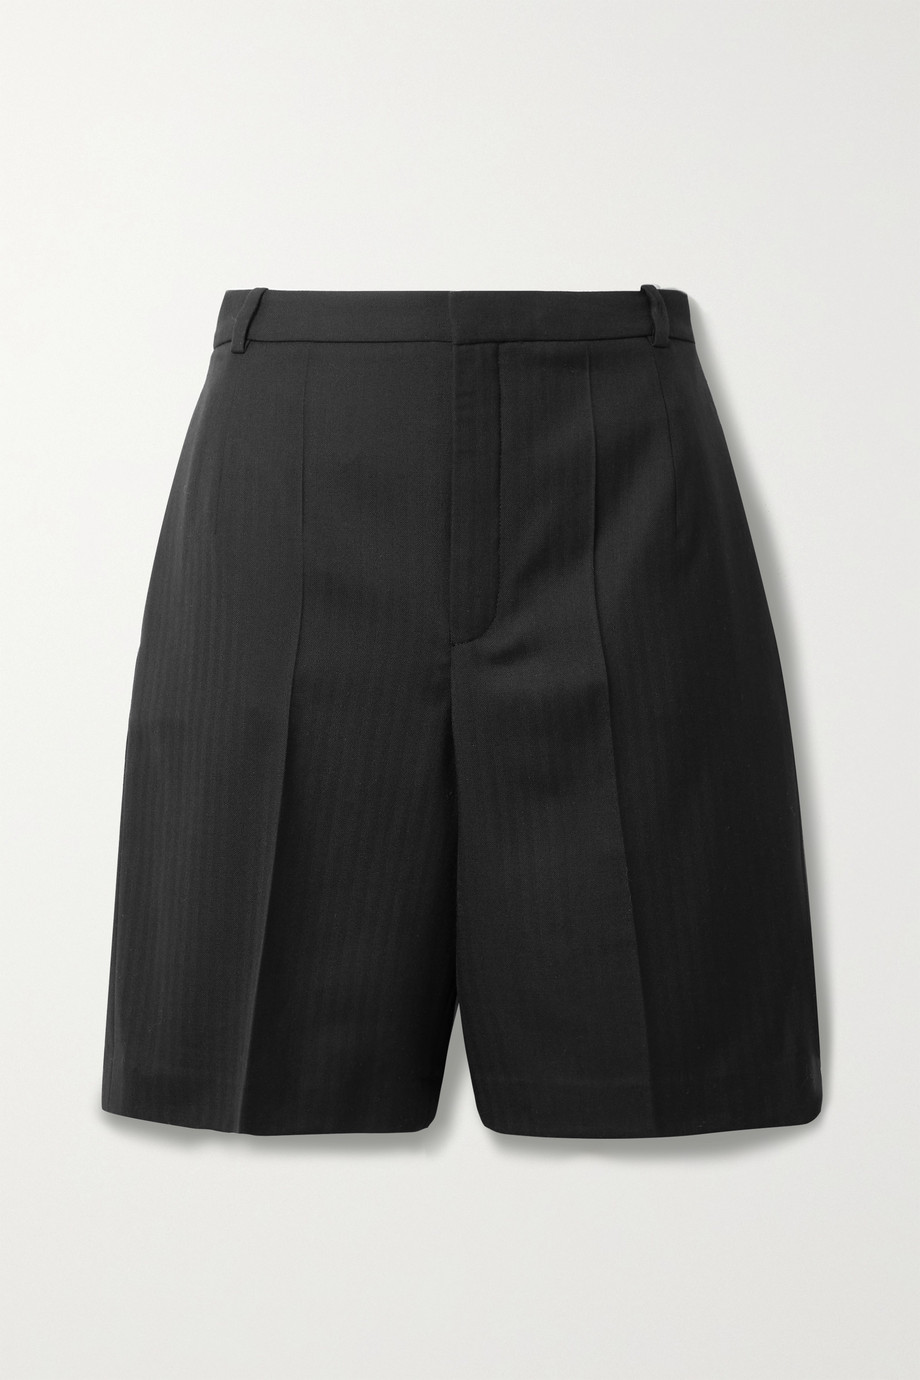 SAINT LAURENT Herringbone wool shorts